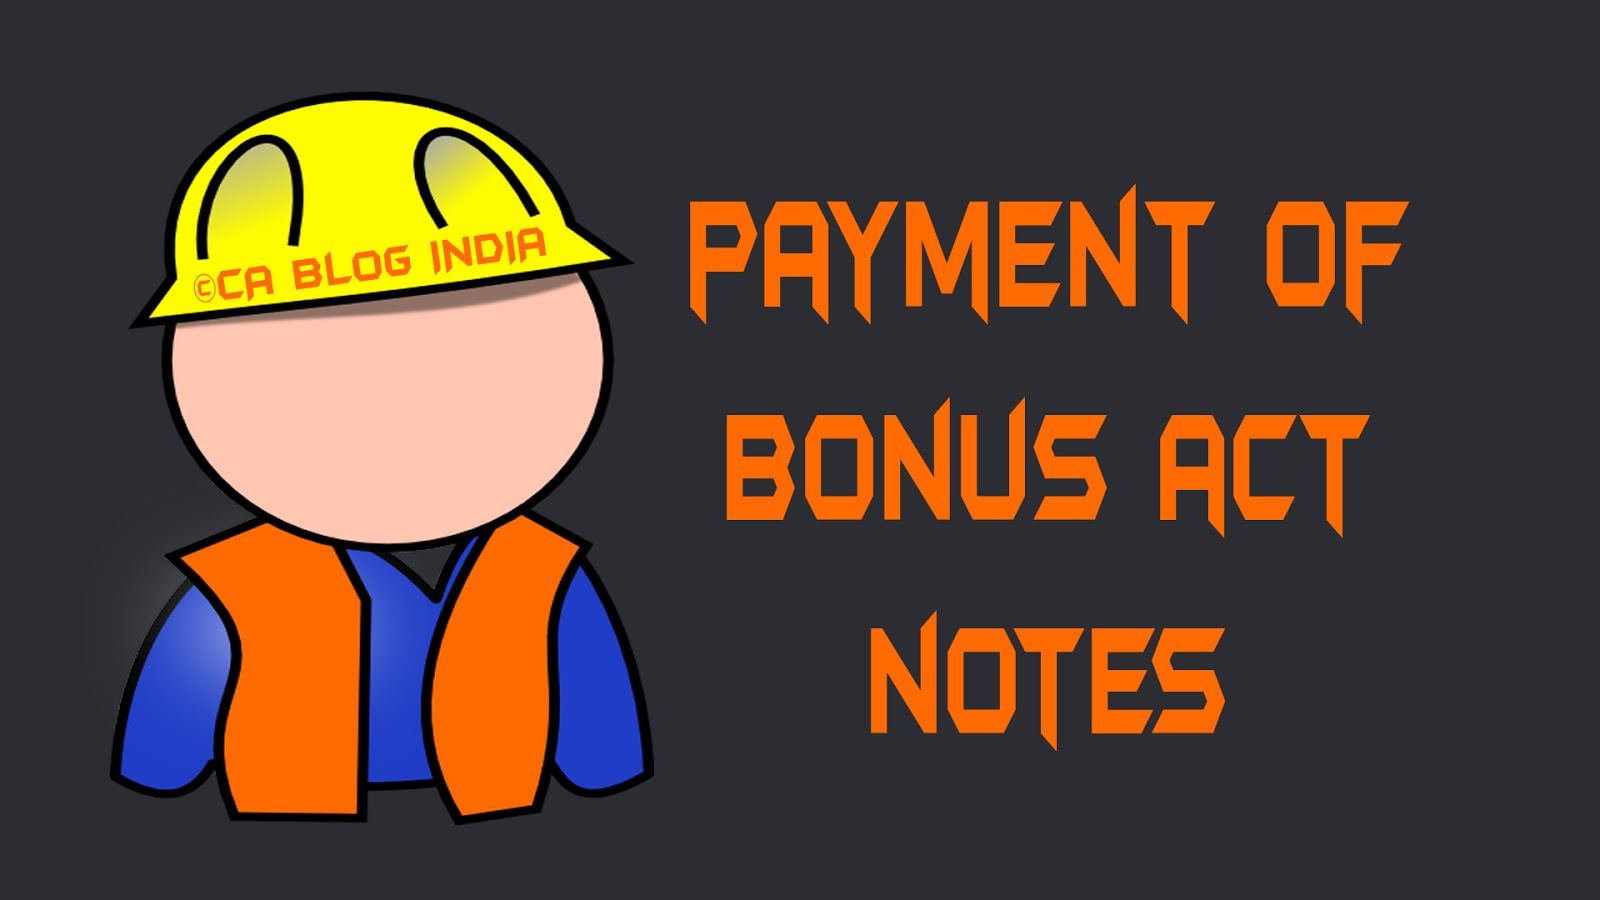 bonus act Bonus act amendment - ceiling raised to rs21,000 january 19, 2016 in one of our previous blogs, we have seen that a bill was proposed to bring changes in the bonus act to raise the ceiling from the current existing rs 10,000.